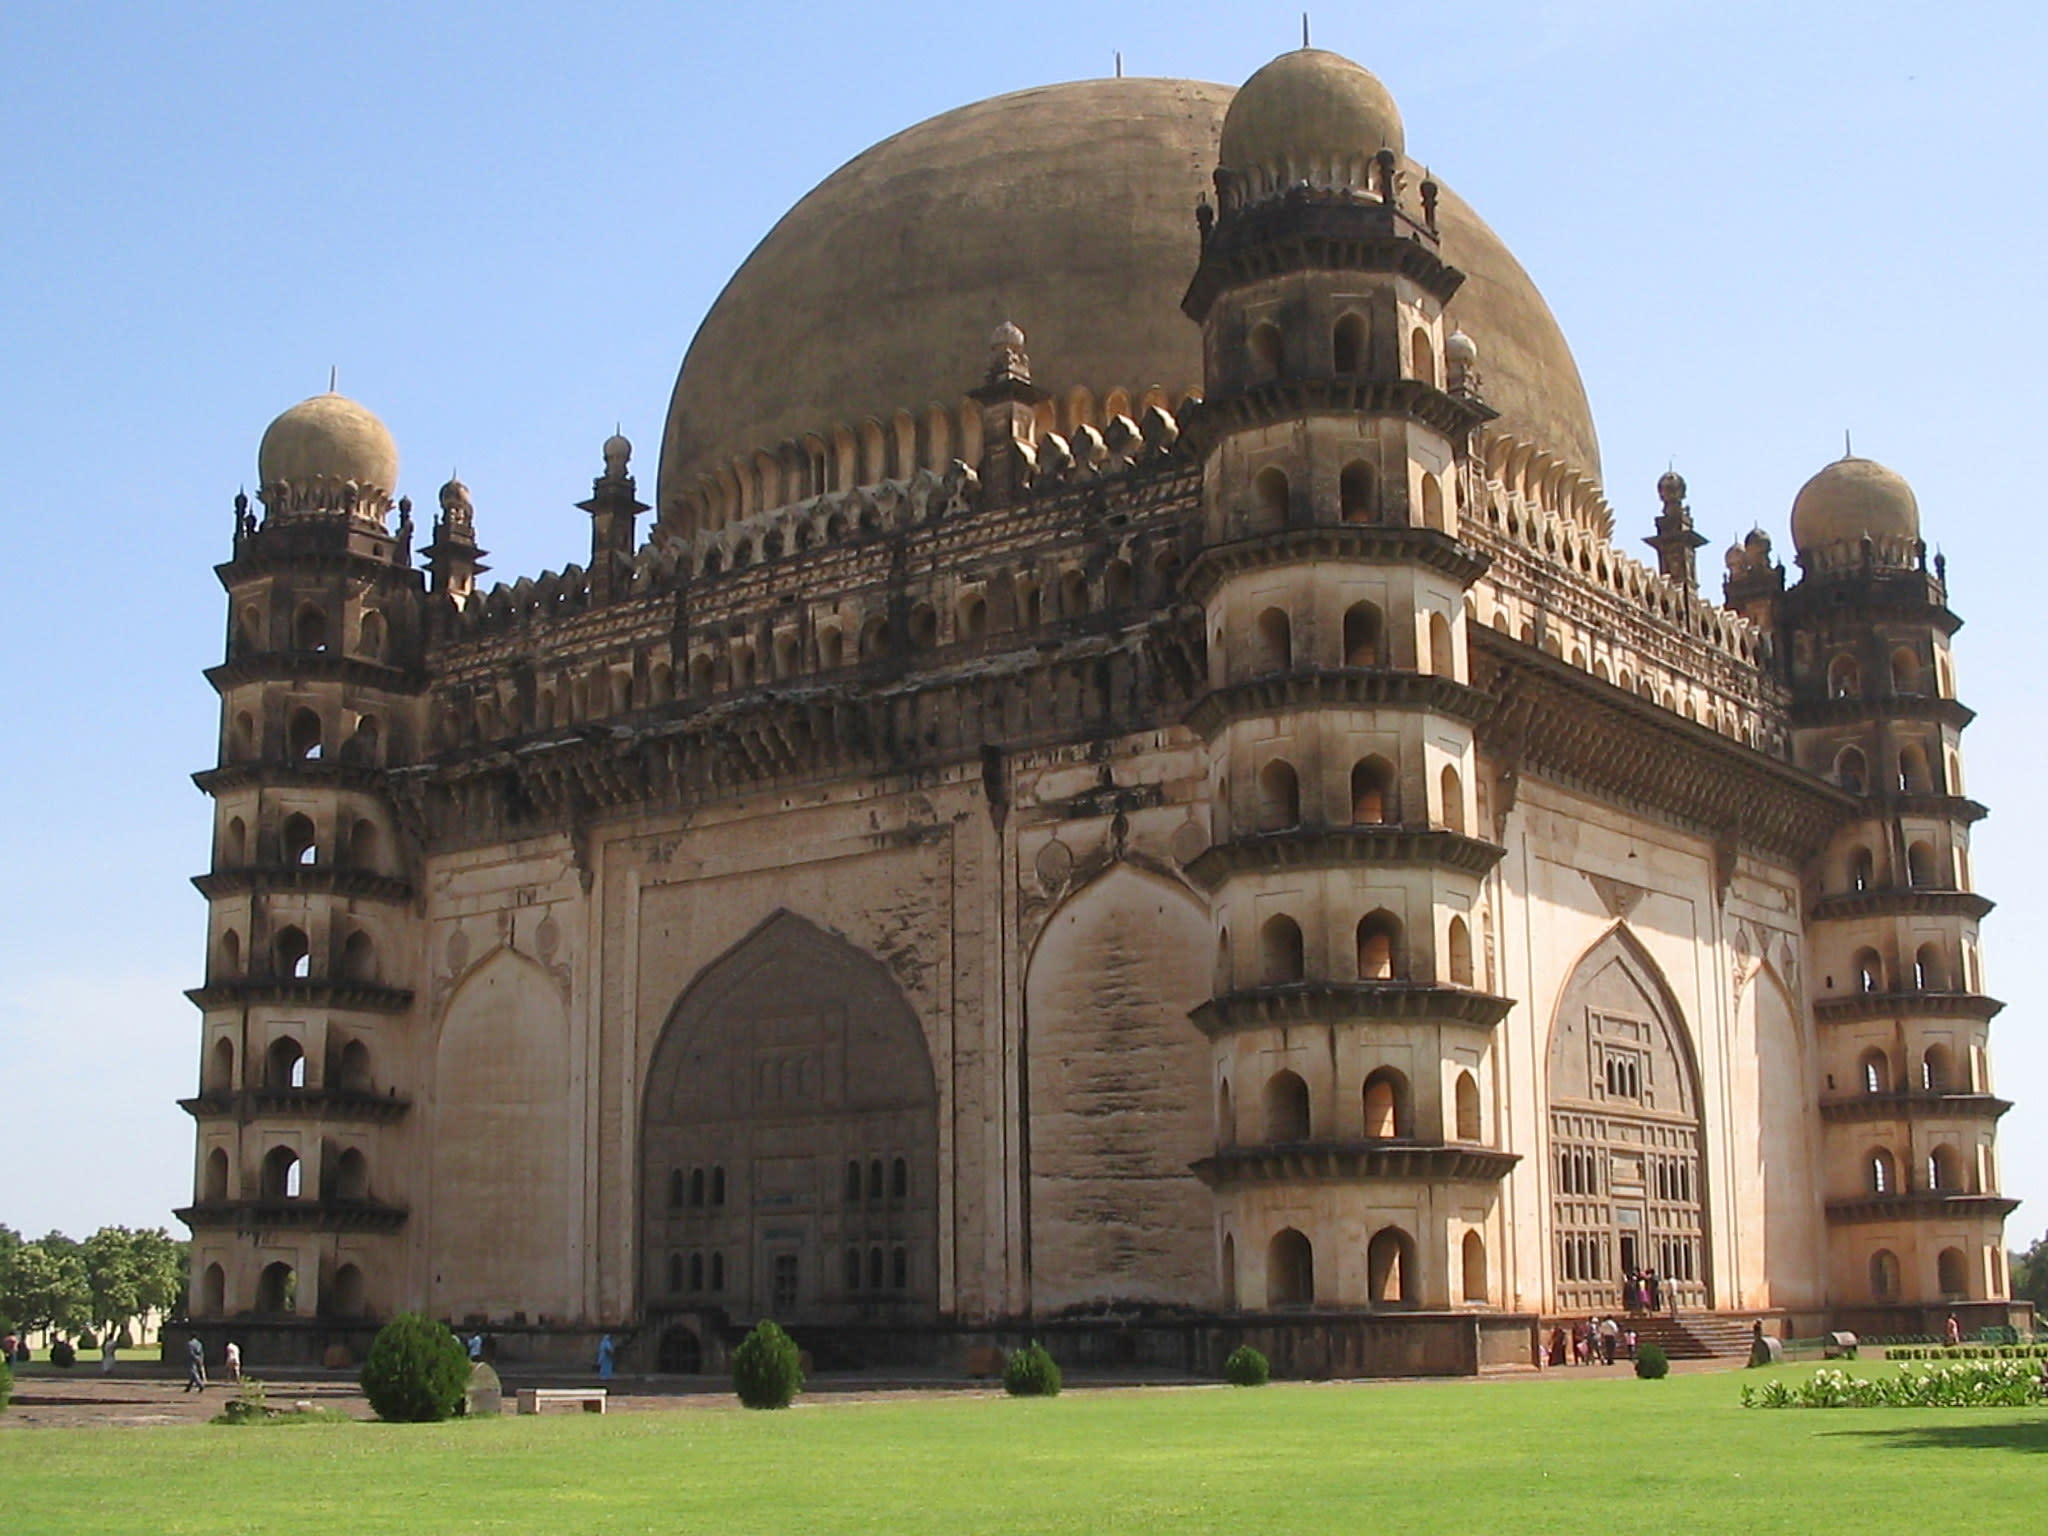 Hire a car and driver in Bijapur